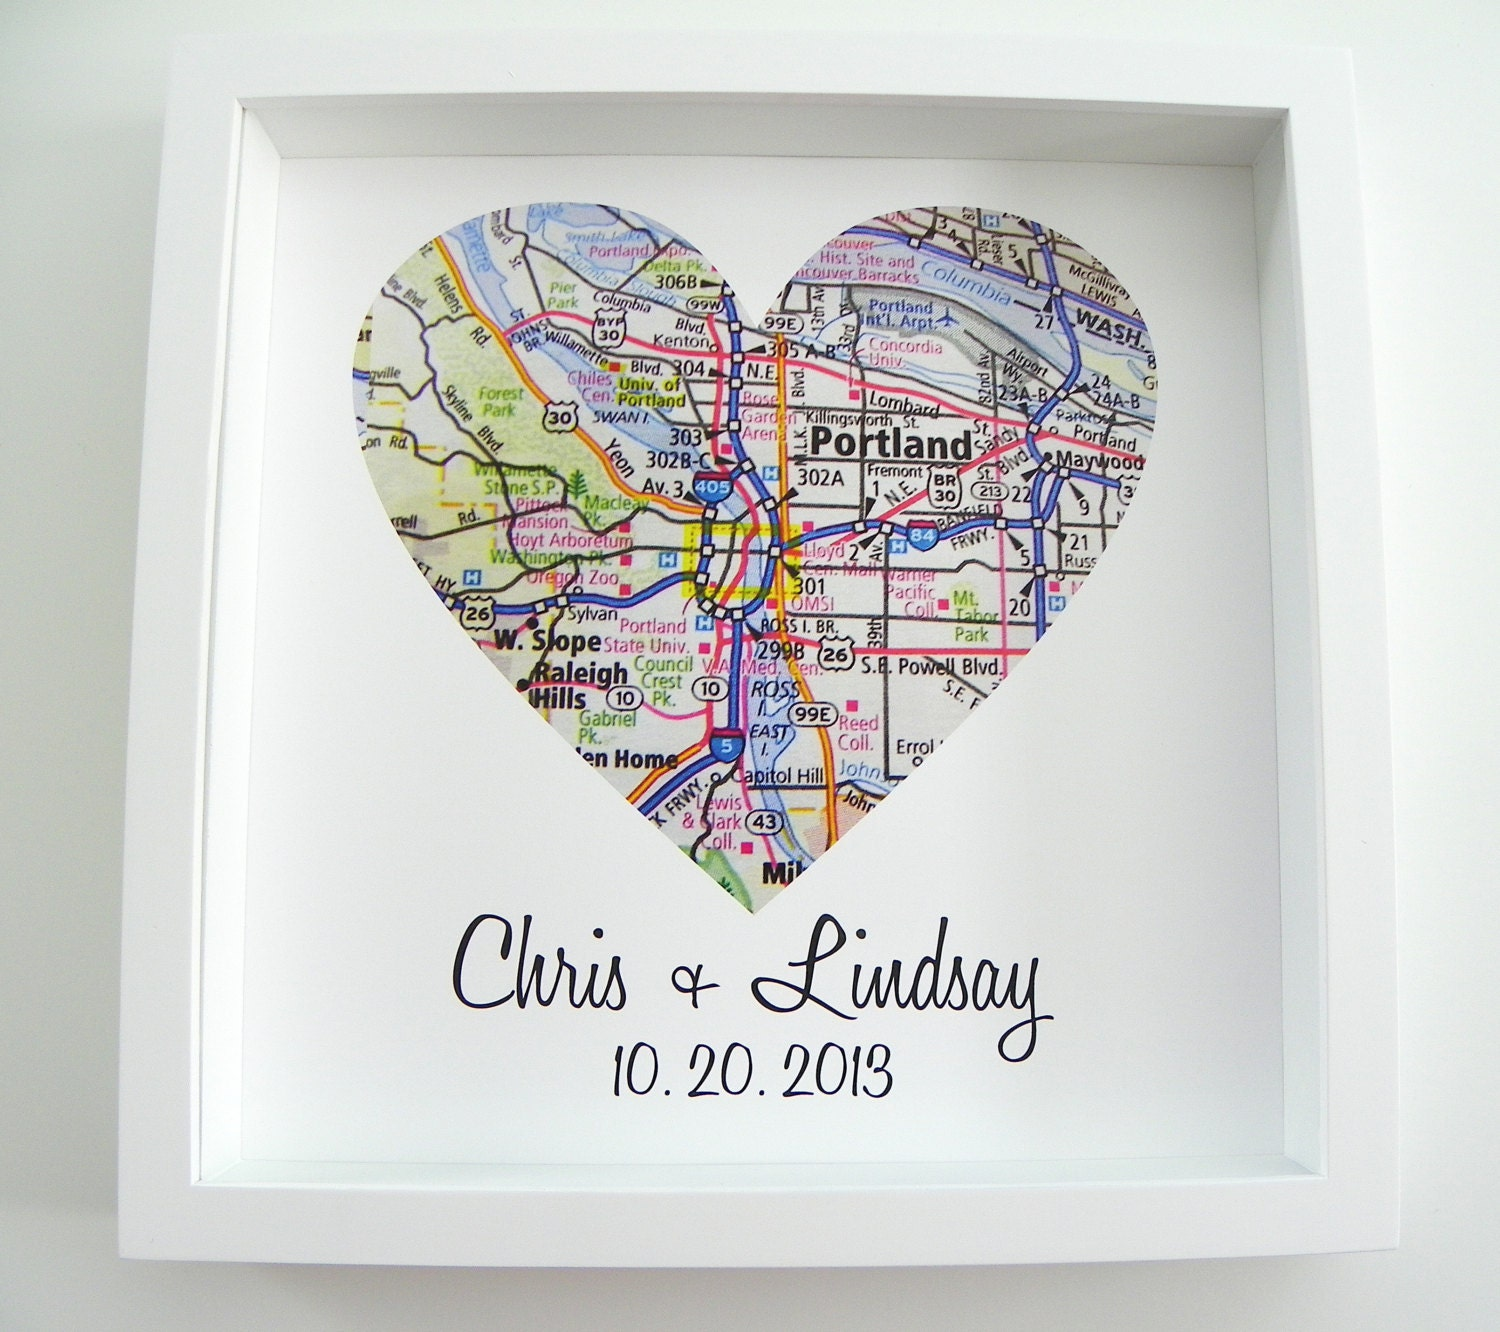 Personalised Wedding Gift Etsy : Wedding Gift : Heart Map Framed Print by DefineDesign11 on Etsy